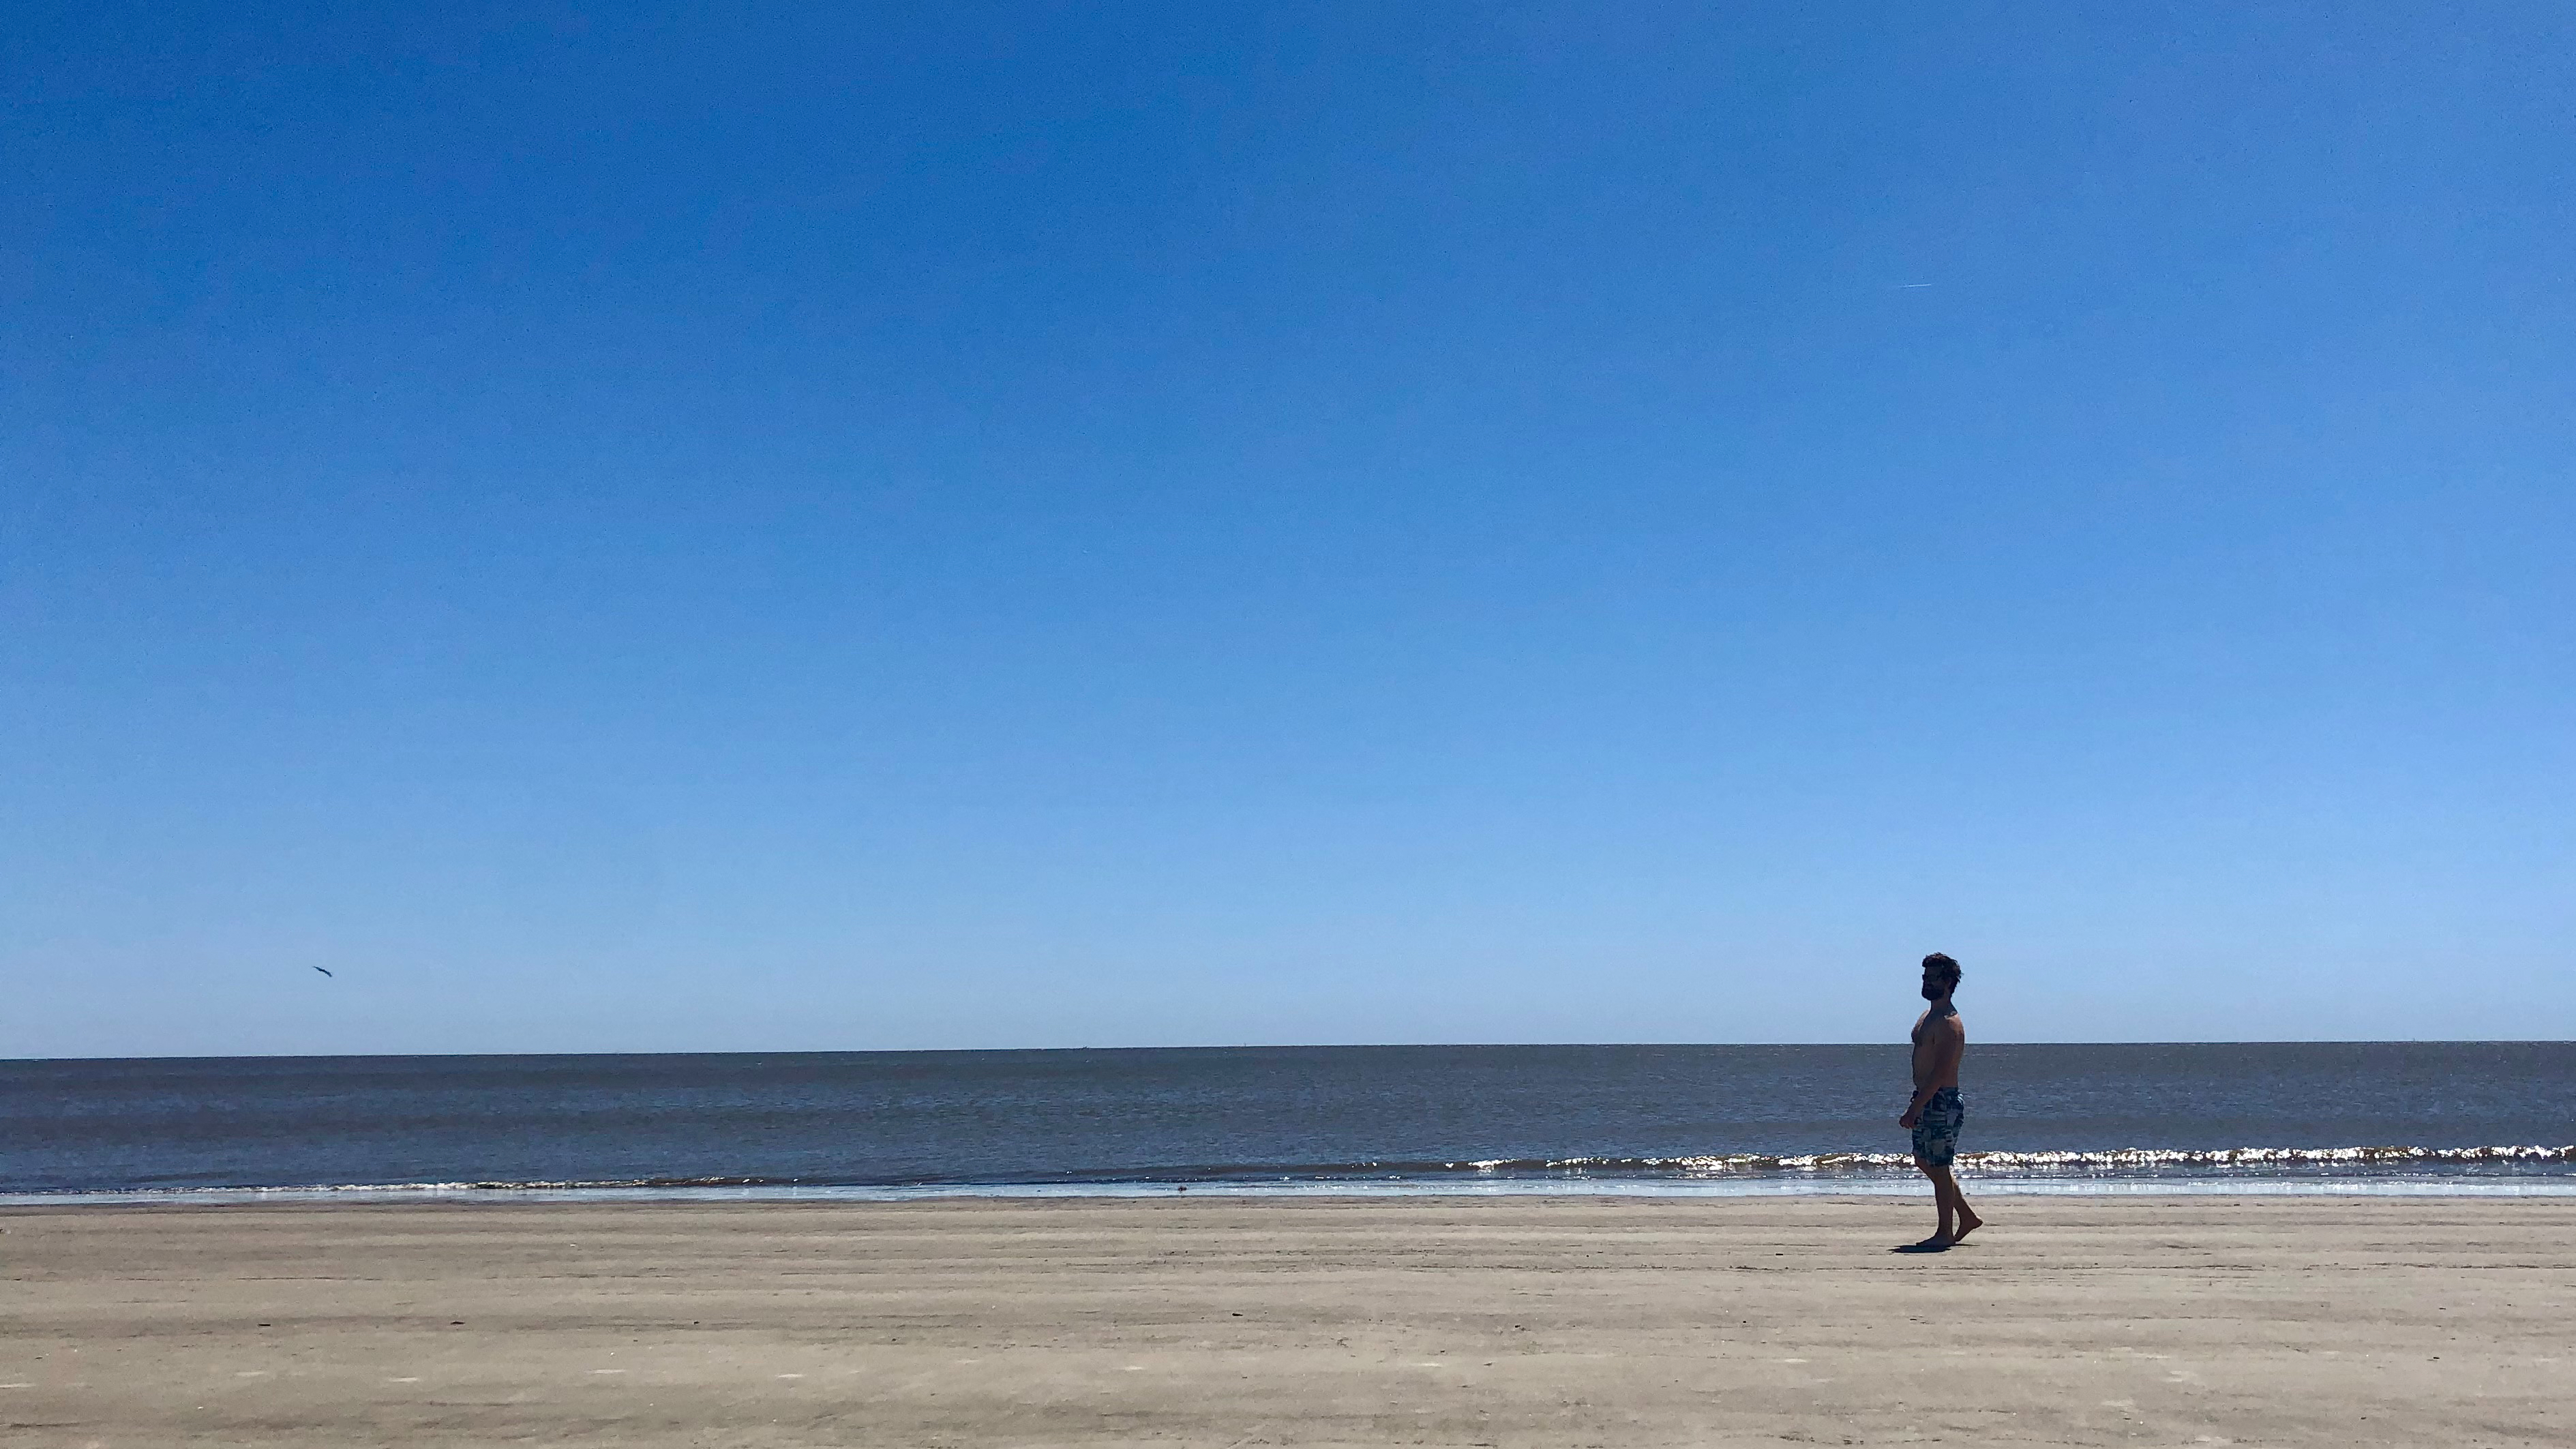 Man walks alone in the beach during a beautiful day without any clouds in the blue sky